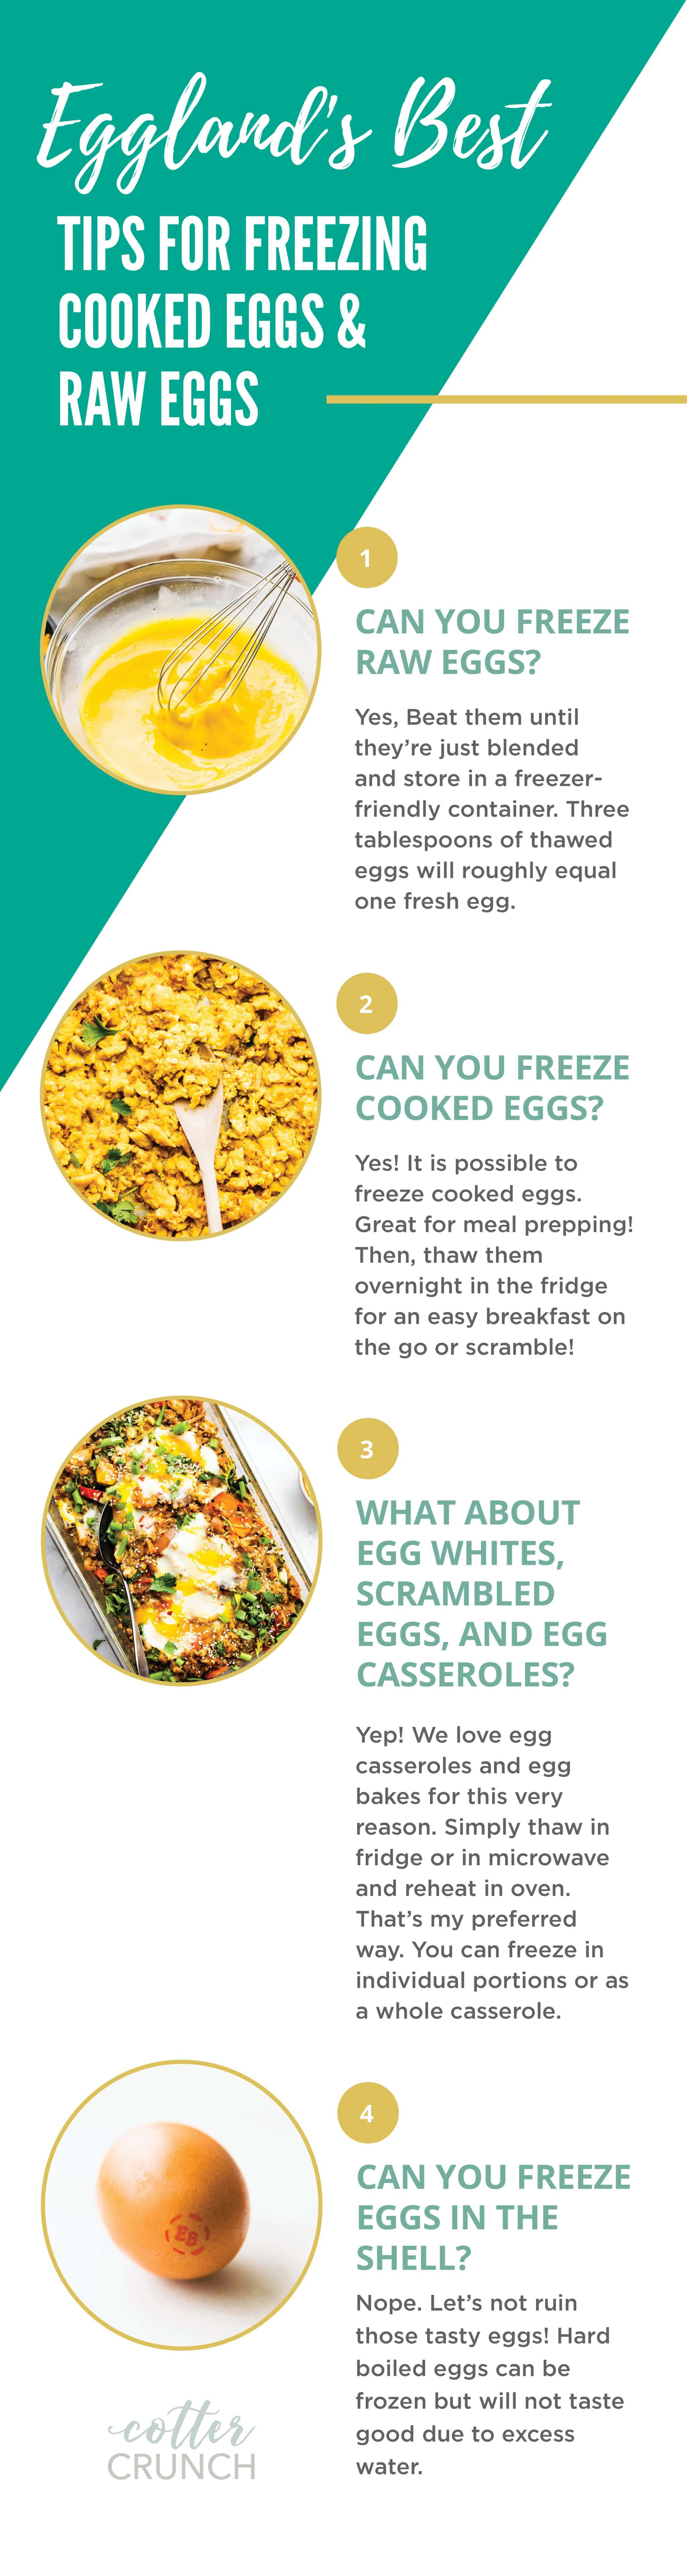 FREEZER MEALS can be a busy person's best friend, especially when those meals include healthy, delicious eggs. This GLUTEN-FREE MEAL PLAN includes tips on how to freeze meals and a grocery shopping list. We even include a special graphic on how to freeze cooked and raw eggs!